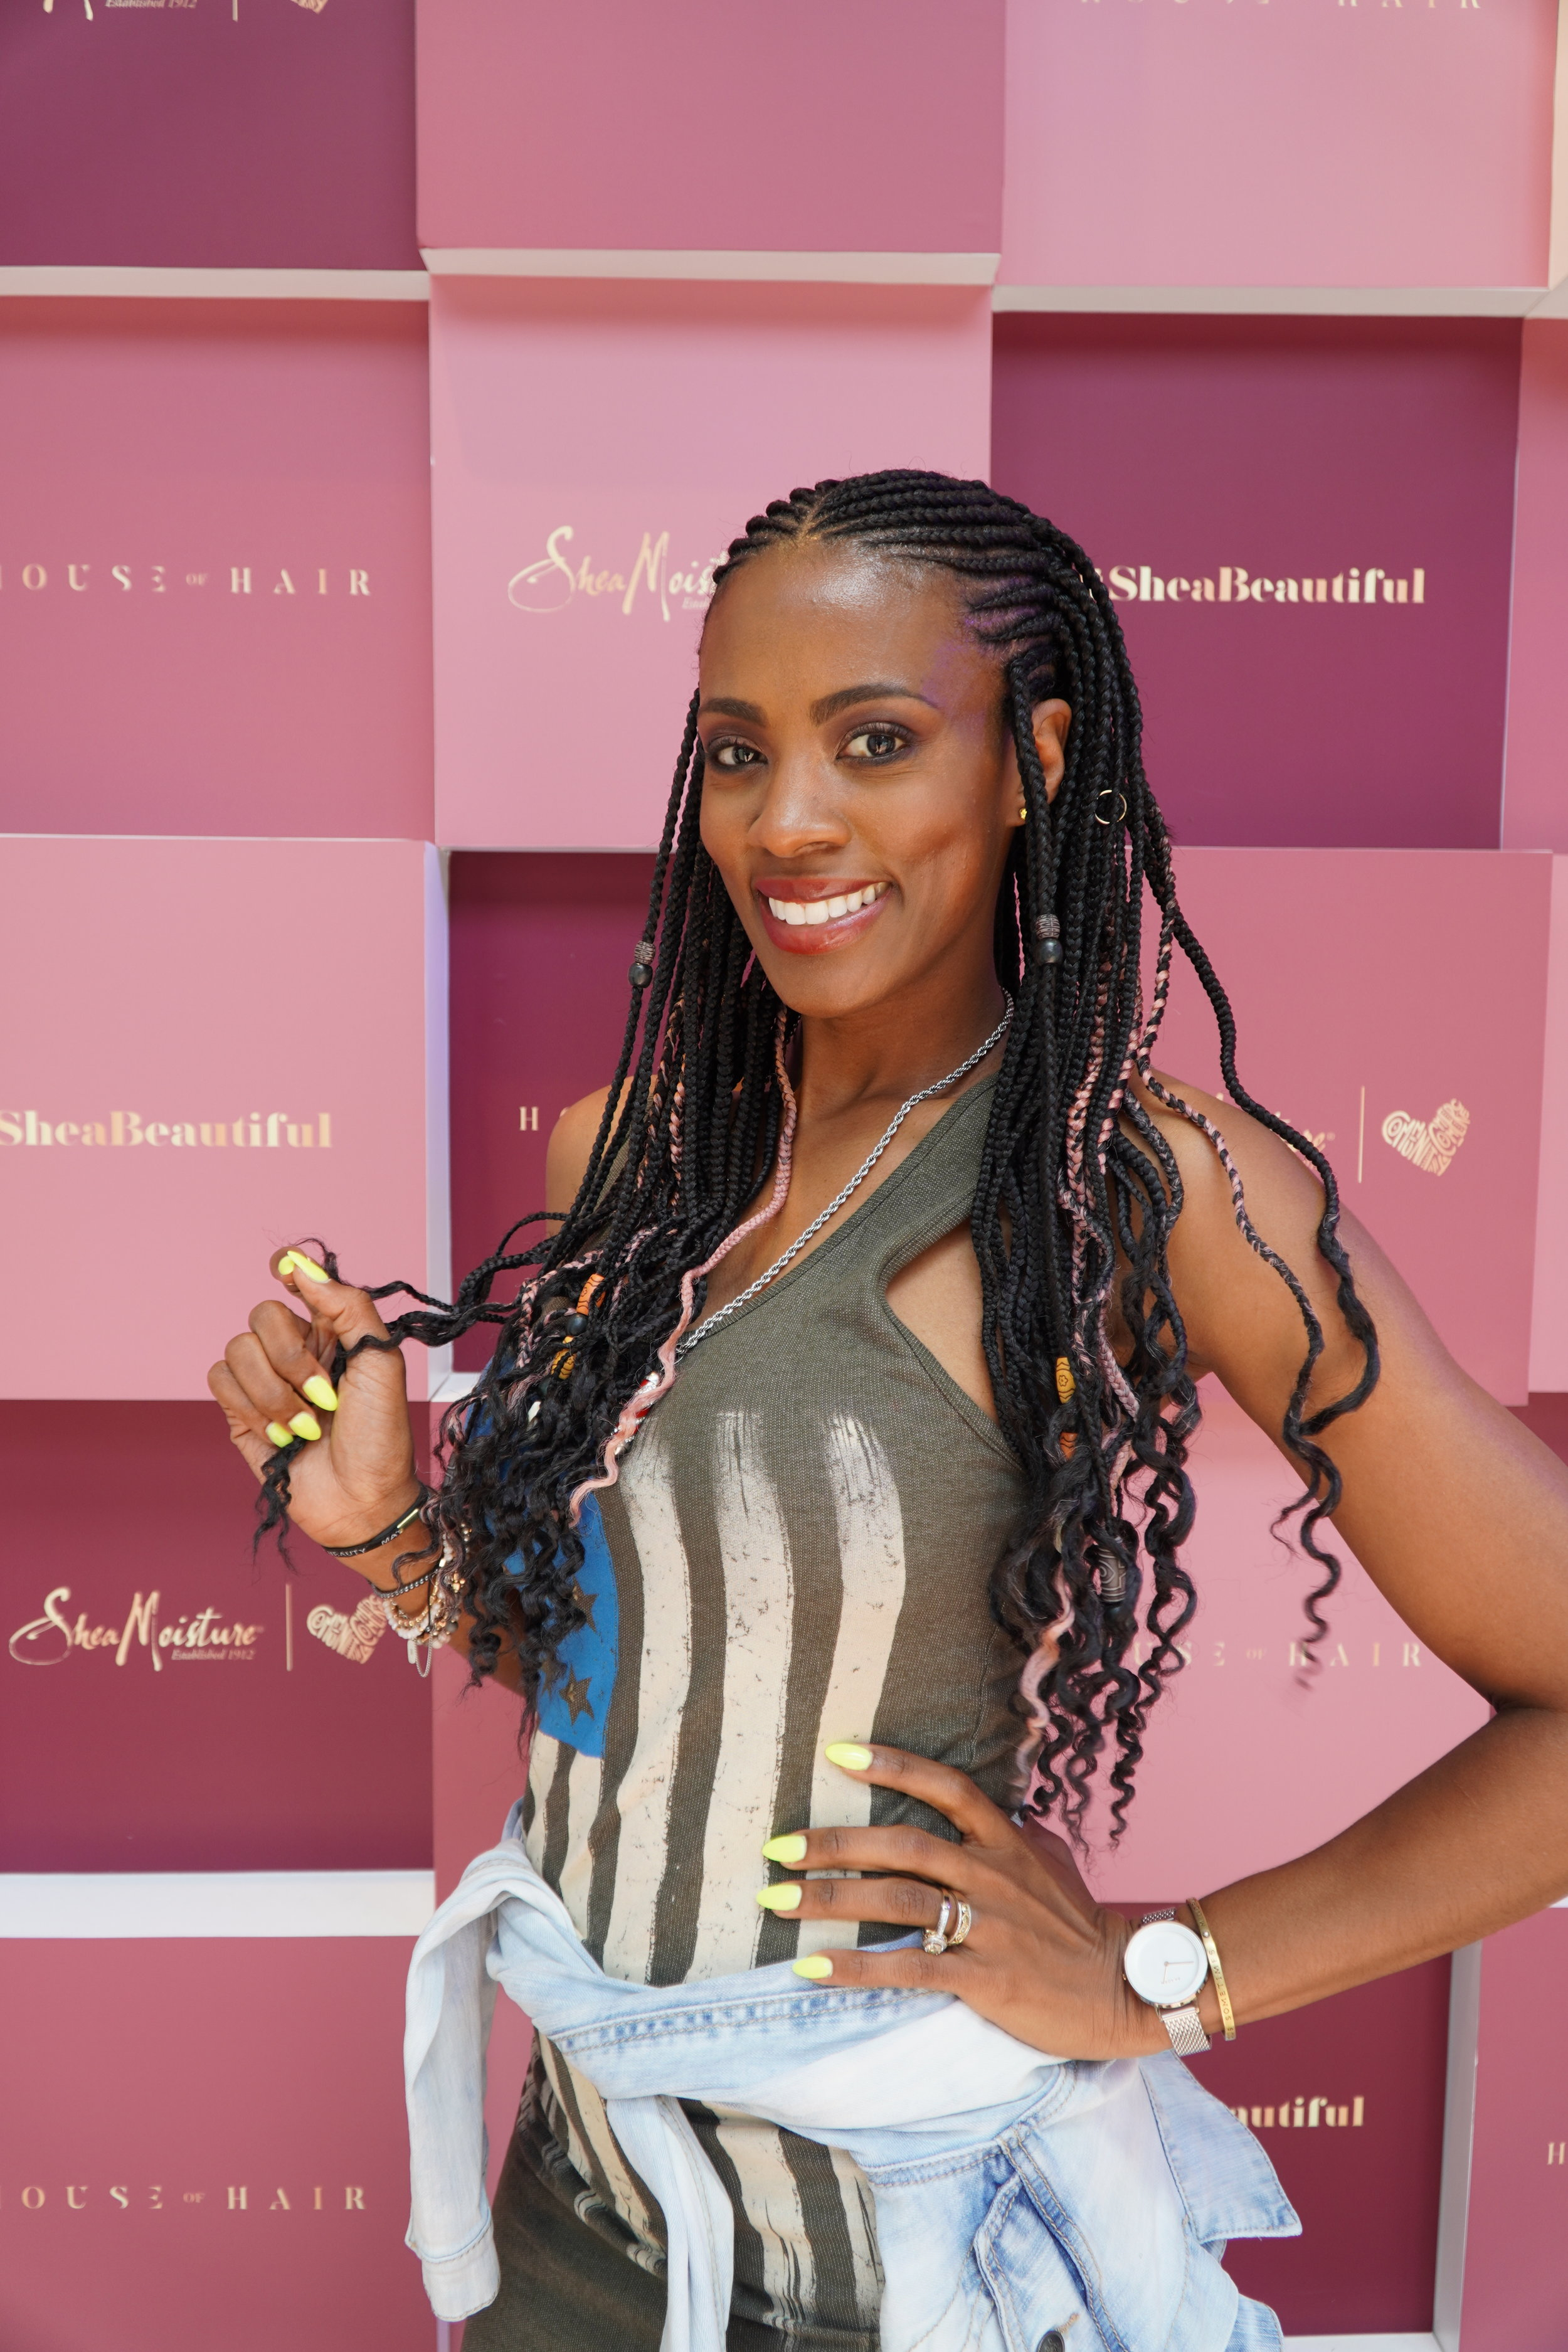 Braids were done by celbrity braider Typh. Click photo for artists website.